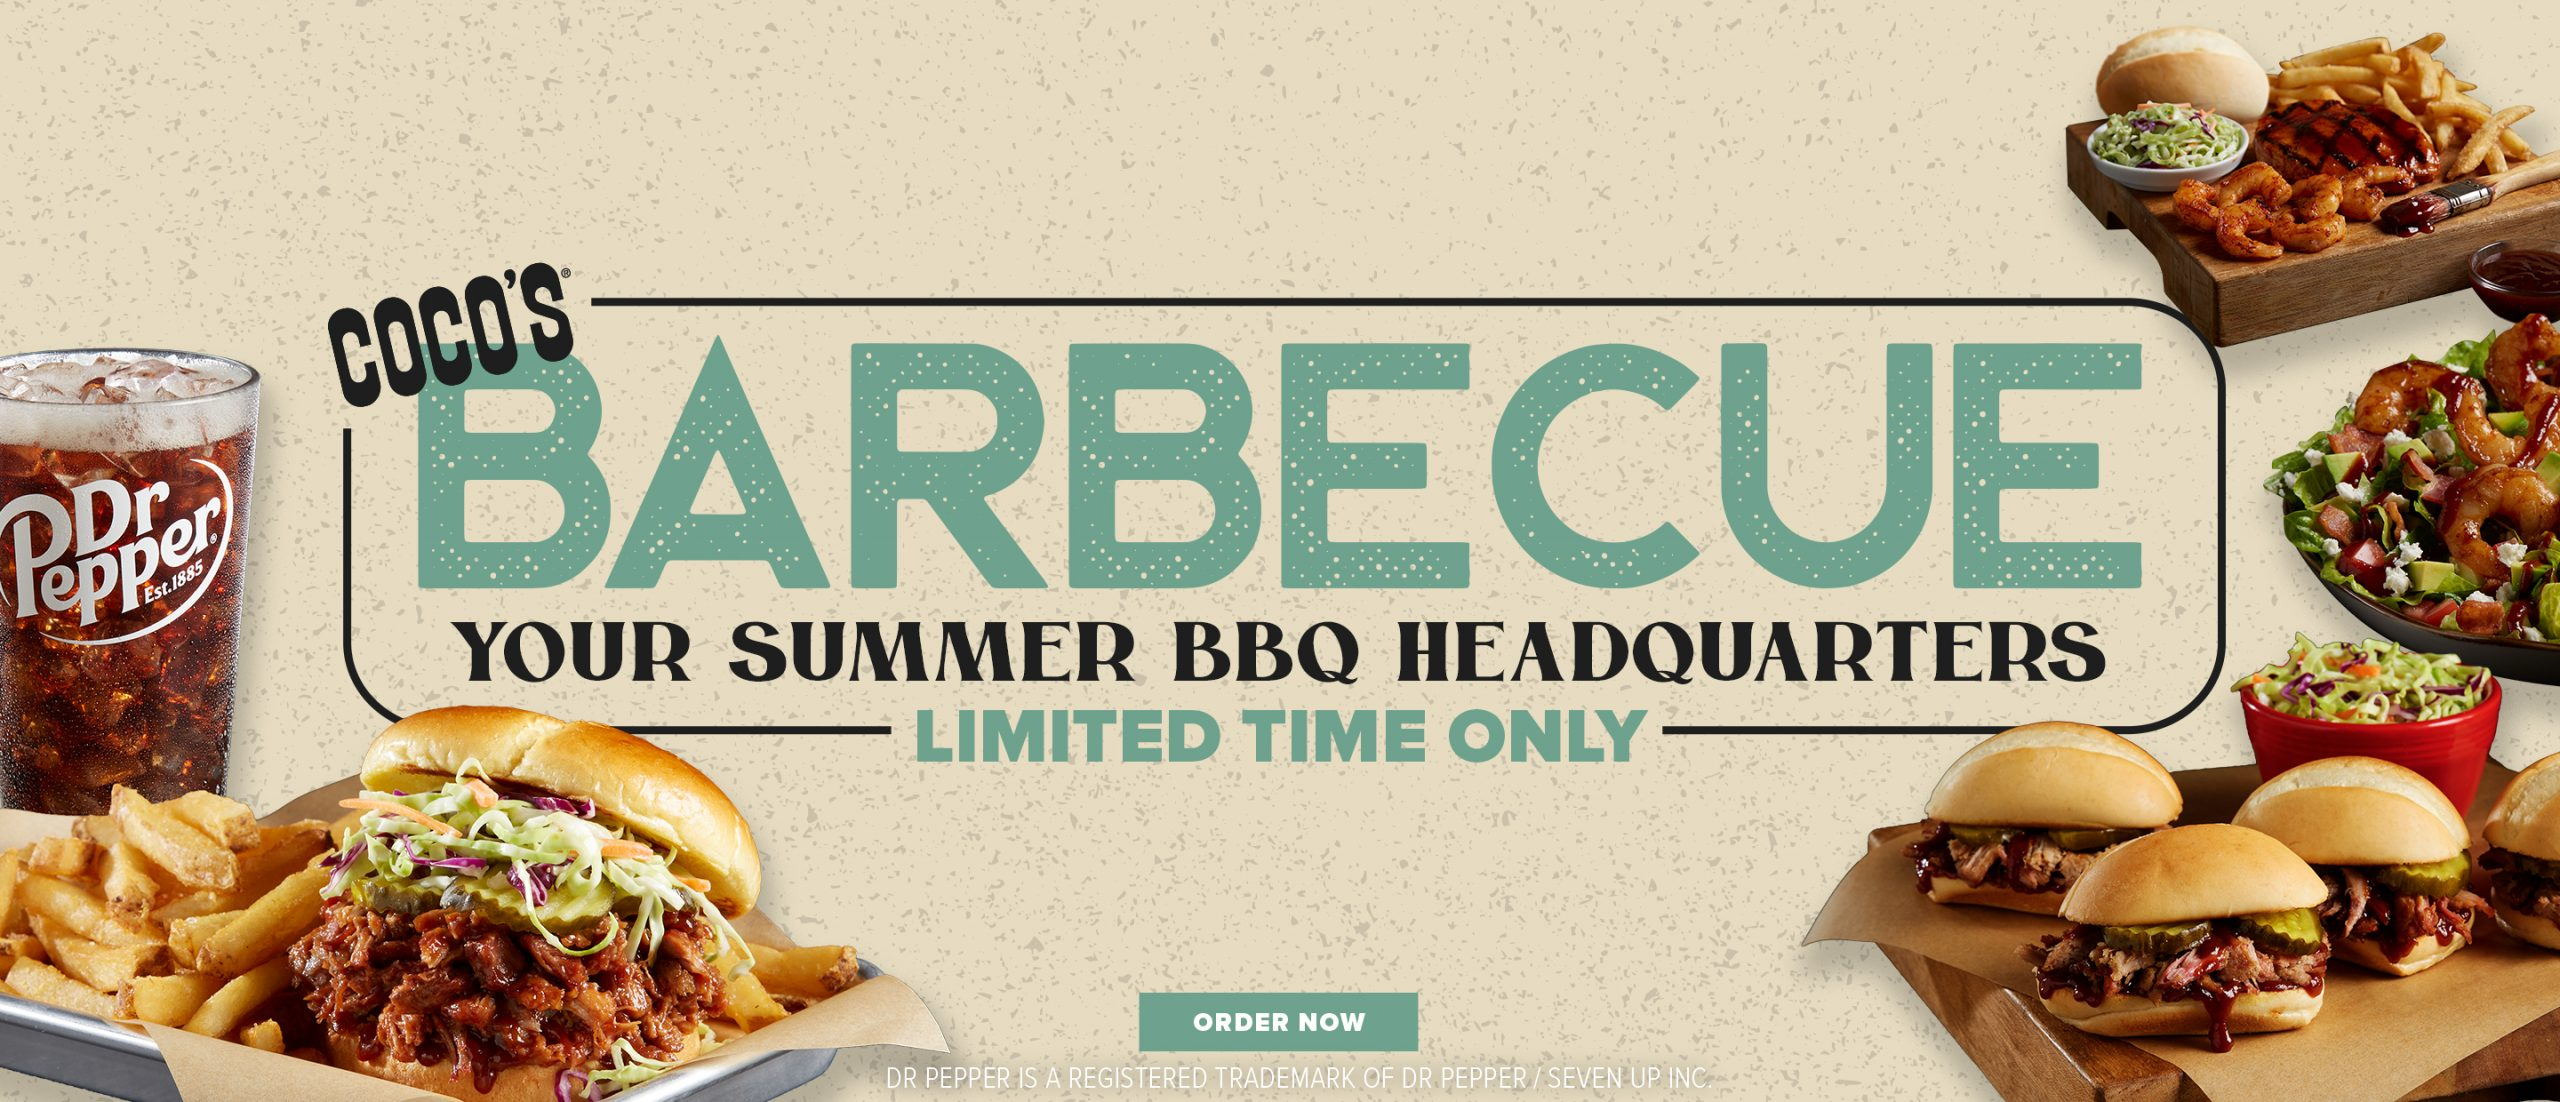 Coco's Barbecue Your summer BBQ Headquarters Limited Time Only. Order Now